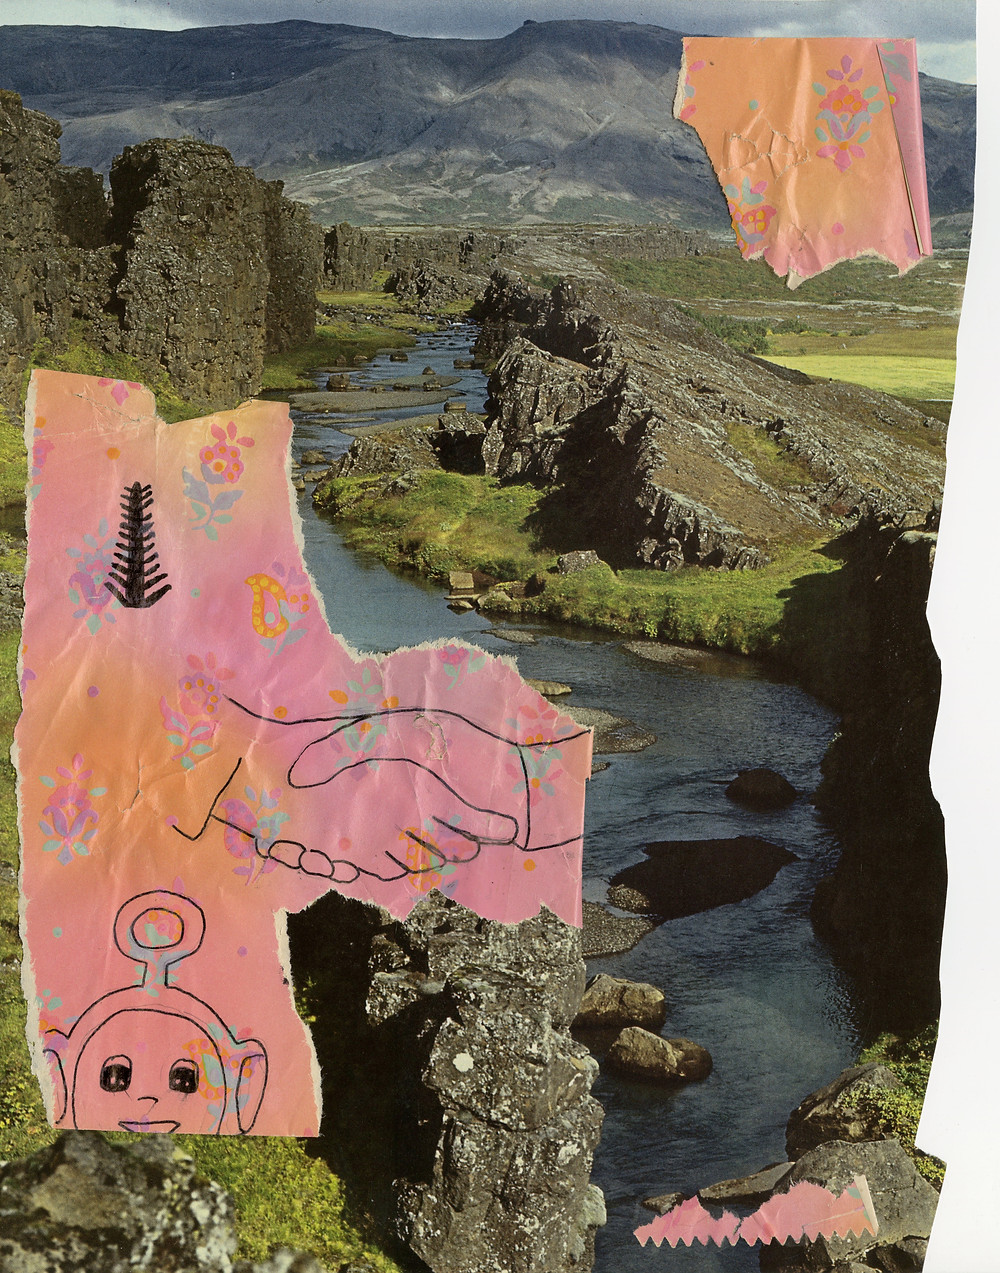 collage of river winding through green landscape with handrawn images of hands shaking, a teletubby, and an abstract tree of life